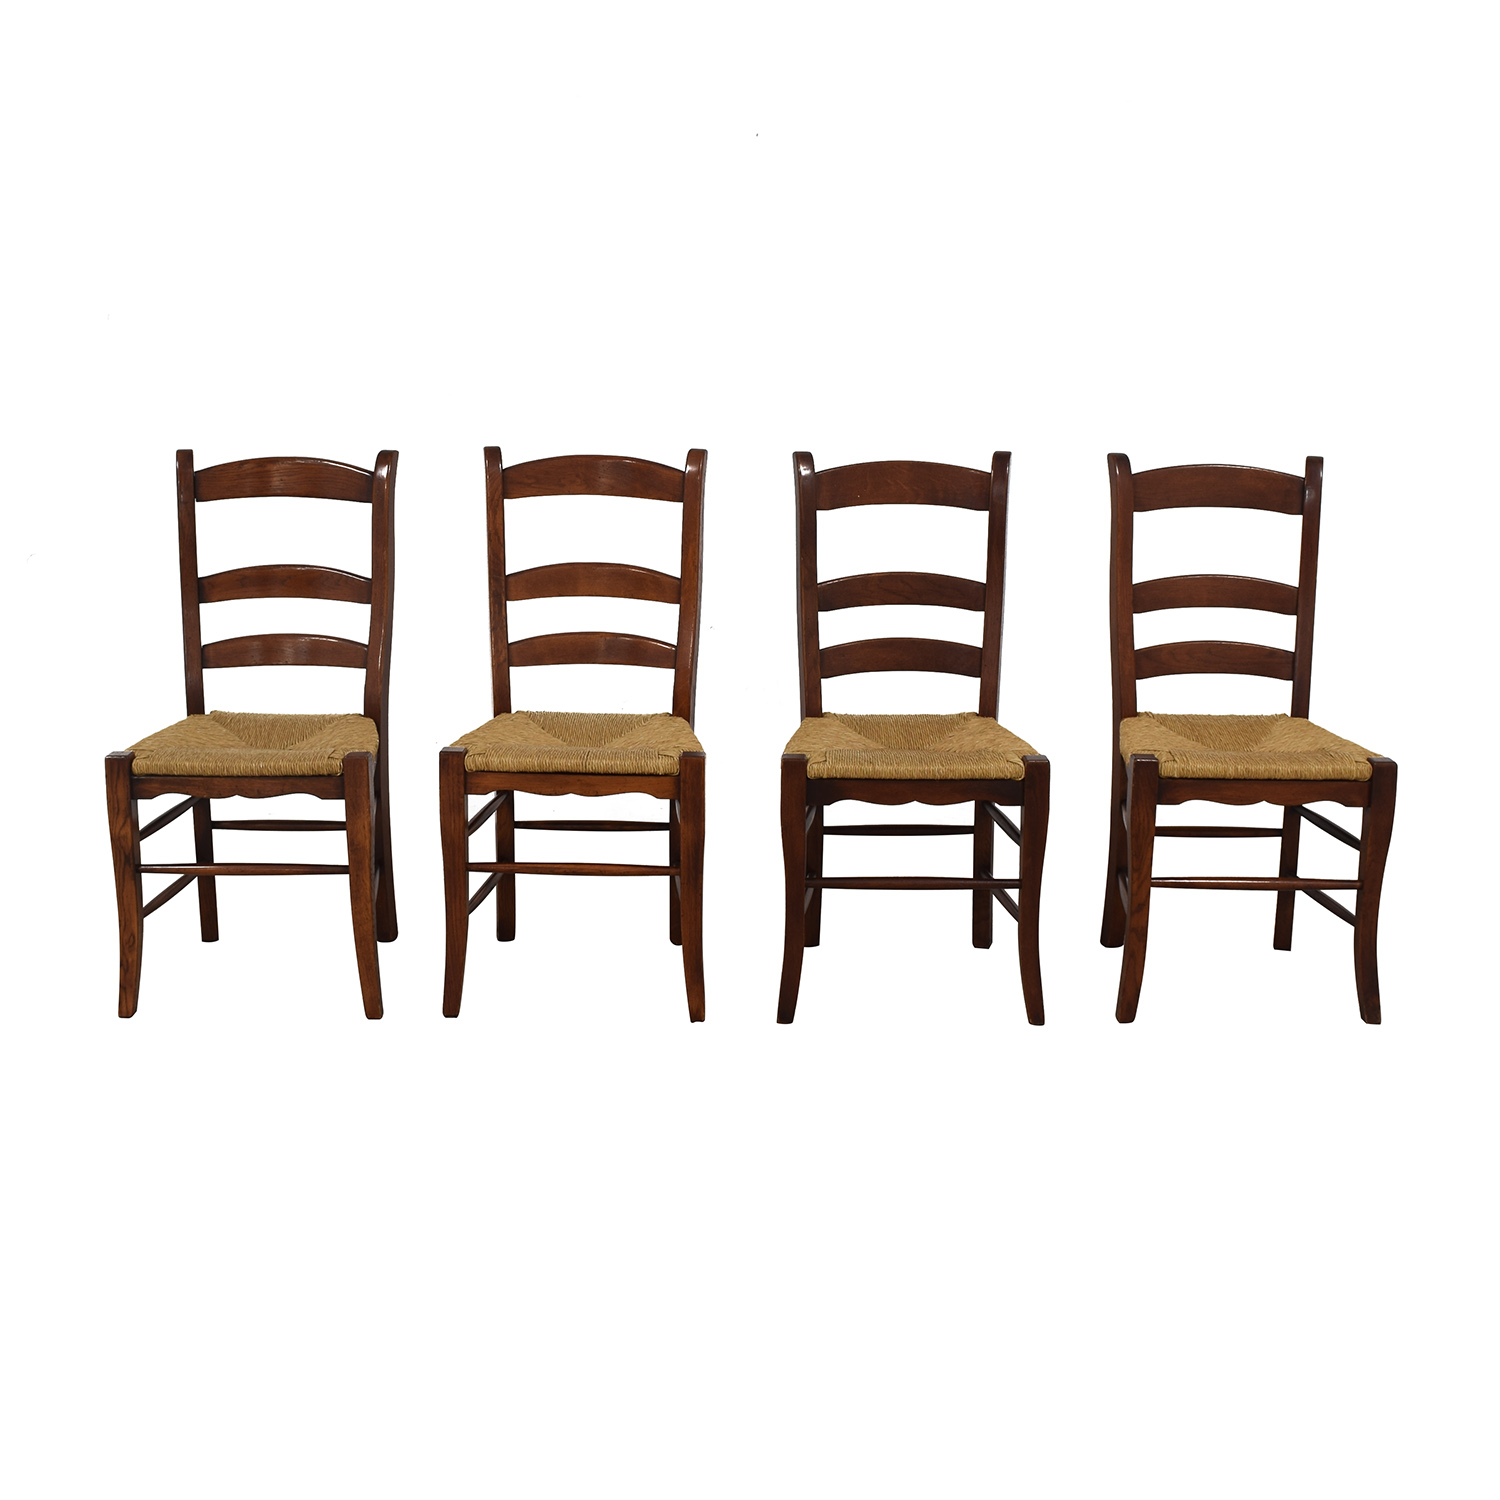 Ladder Style Rush Seat Dining Chairs for sale